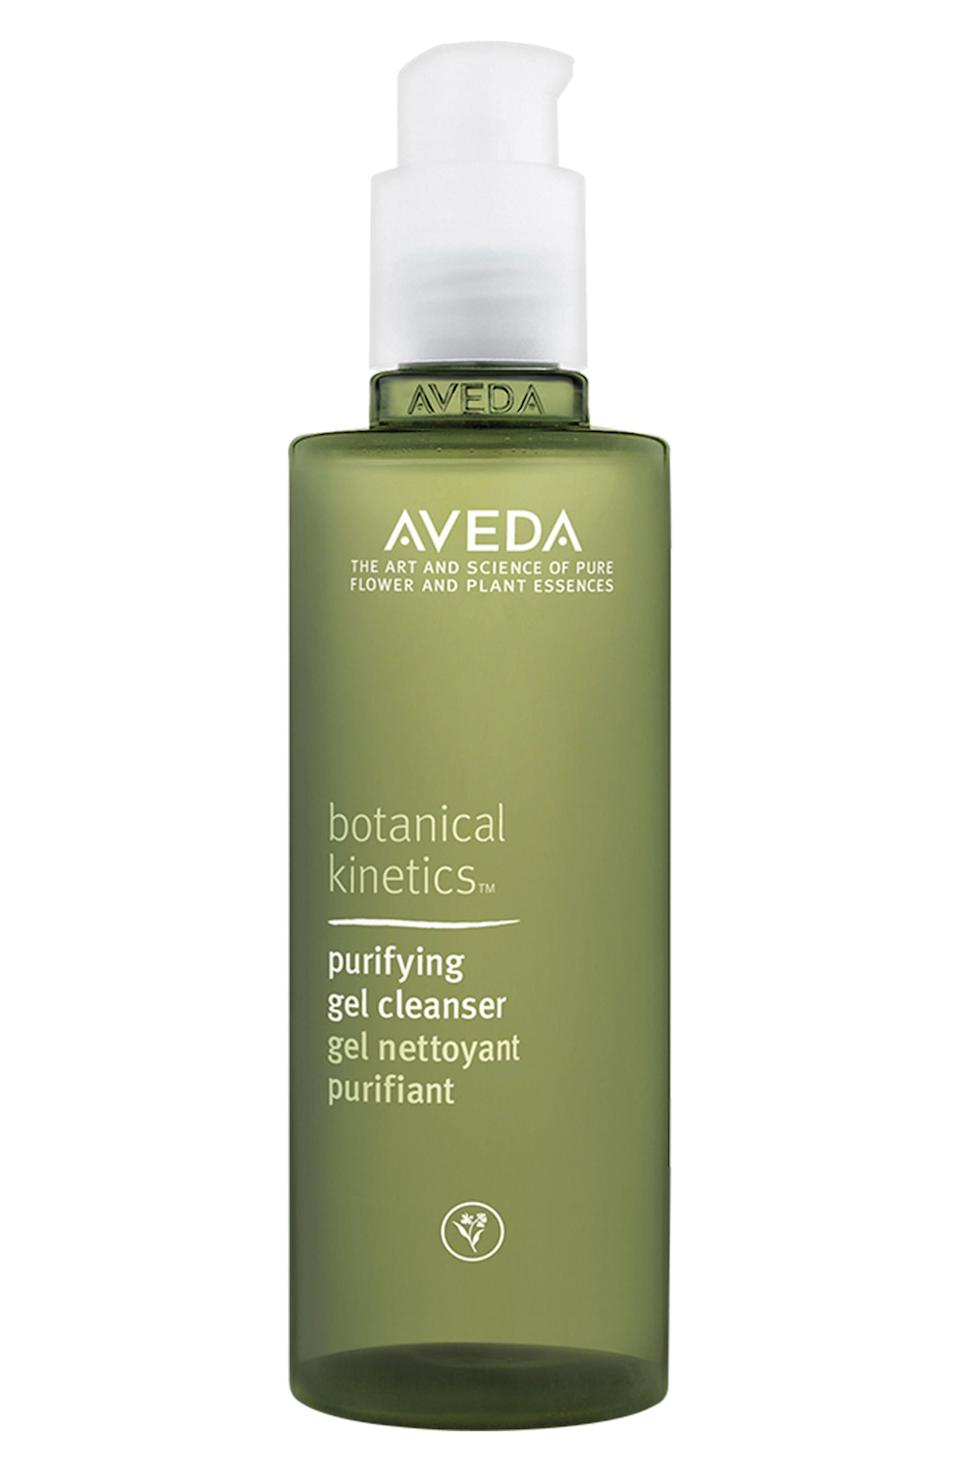 "<p><strong>AVEDA</strong></p><p>nordstrom.com</p><p><strong>$24.00</strong></p><p><a href=""https://go.redirectingat.com?id=74968X1596630&url=https%3A%2F%2Fwww.nordstrom.com%2Fs%2Faveda-botanical-kinetics-purifying-gel-cleanser%2F3411844&sref=https%3A%2F%2Fwww.thepioneerwoman.com%2Fbeauty%2Fskin-makeup-nails%2Fg34418496%2Fbest-facial-cleanser%2F"" rel=""nofollow noopener"" target=""_blank"" data-ylk=""slk:Shop Now"" class=""link rapid-noclick-resp"">Shop Now</a></p><p>Ree uses a mild cleanser from Aveda, like this one, as a part of her super simple skincare routine. It works for normal to oily skin types. <br></p>"